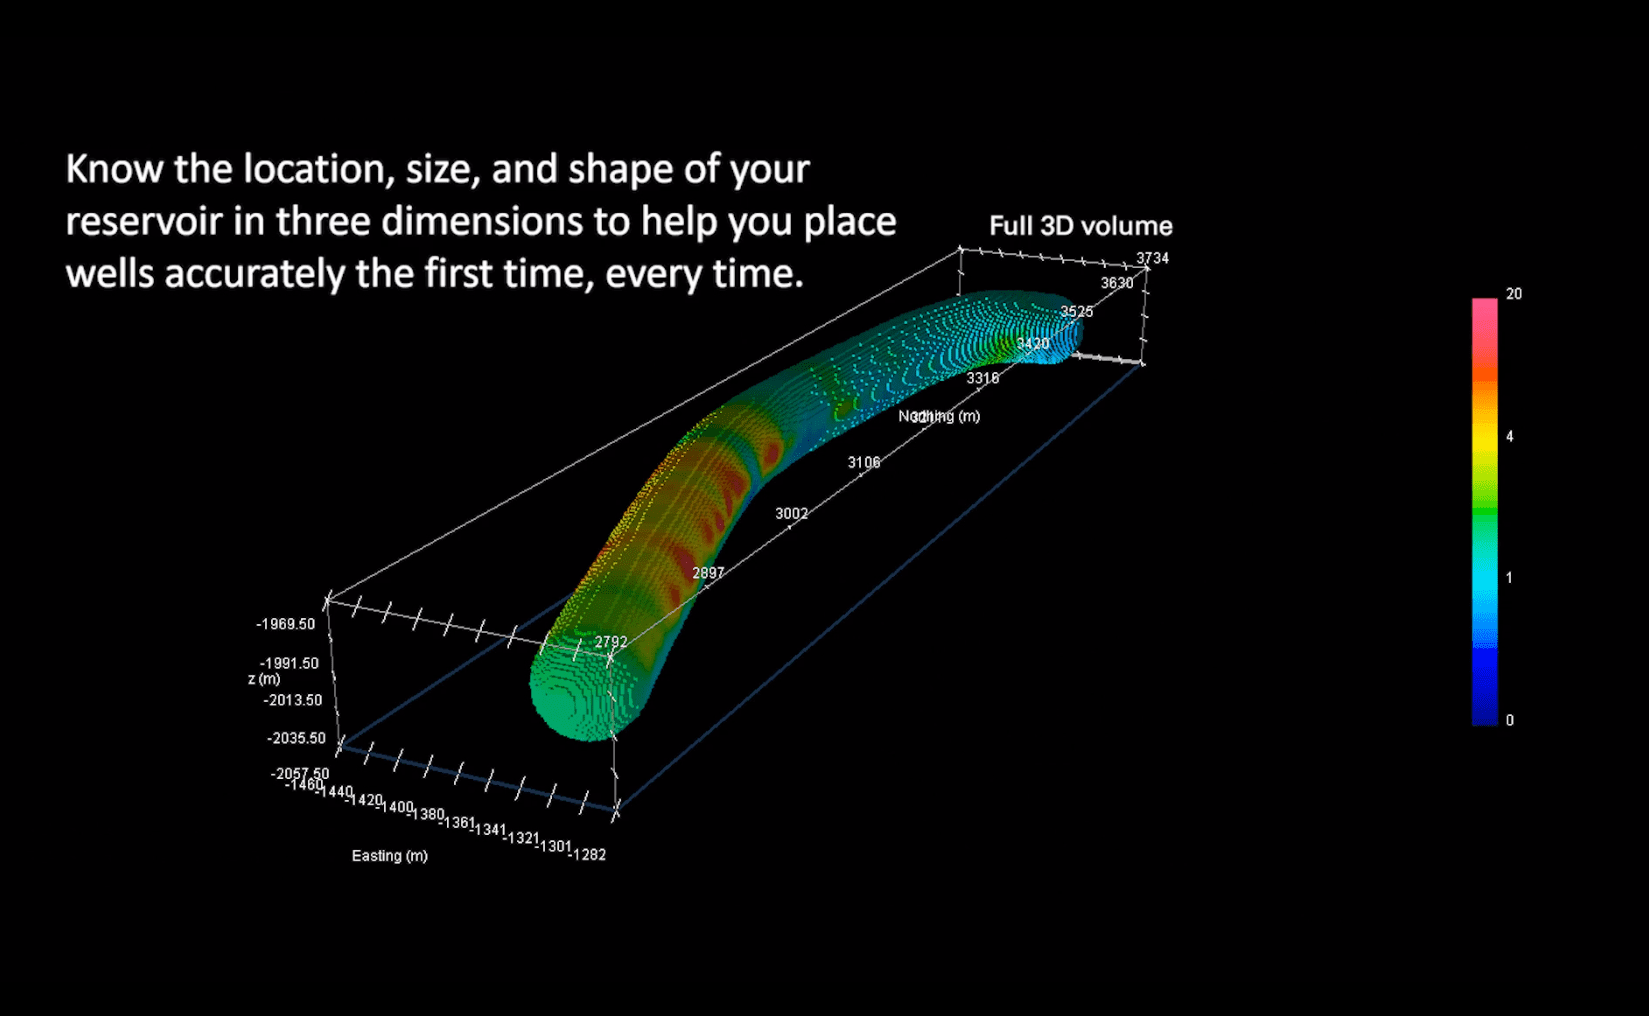 New visualization enables precise geosteering and accurate well placement